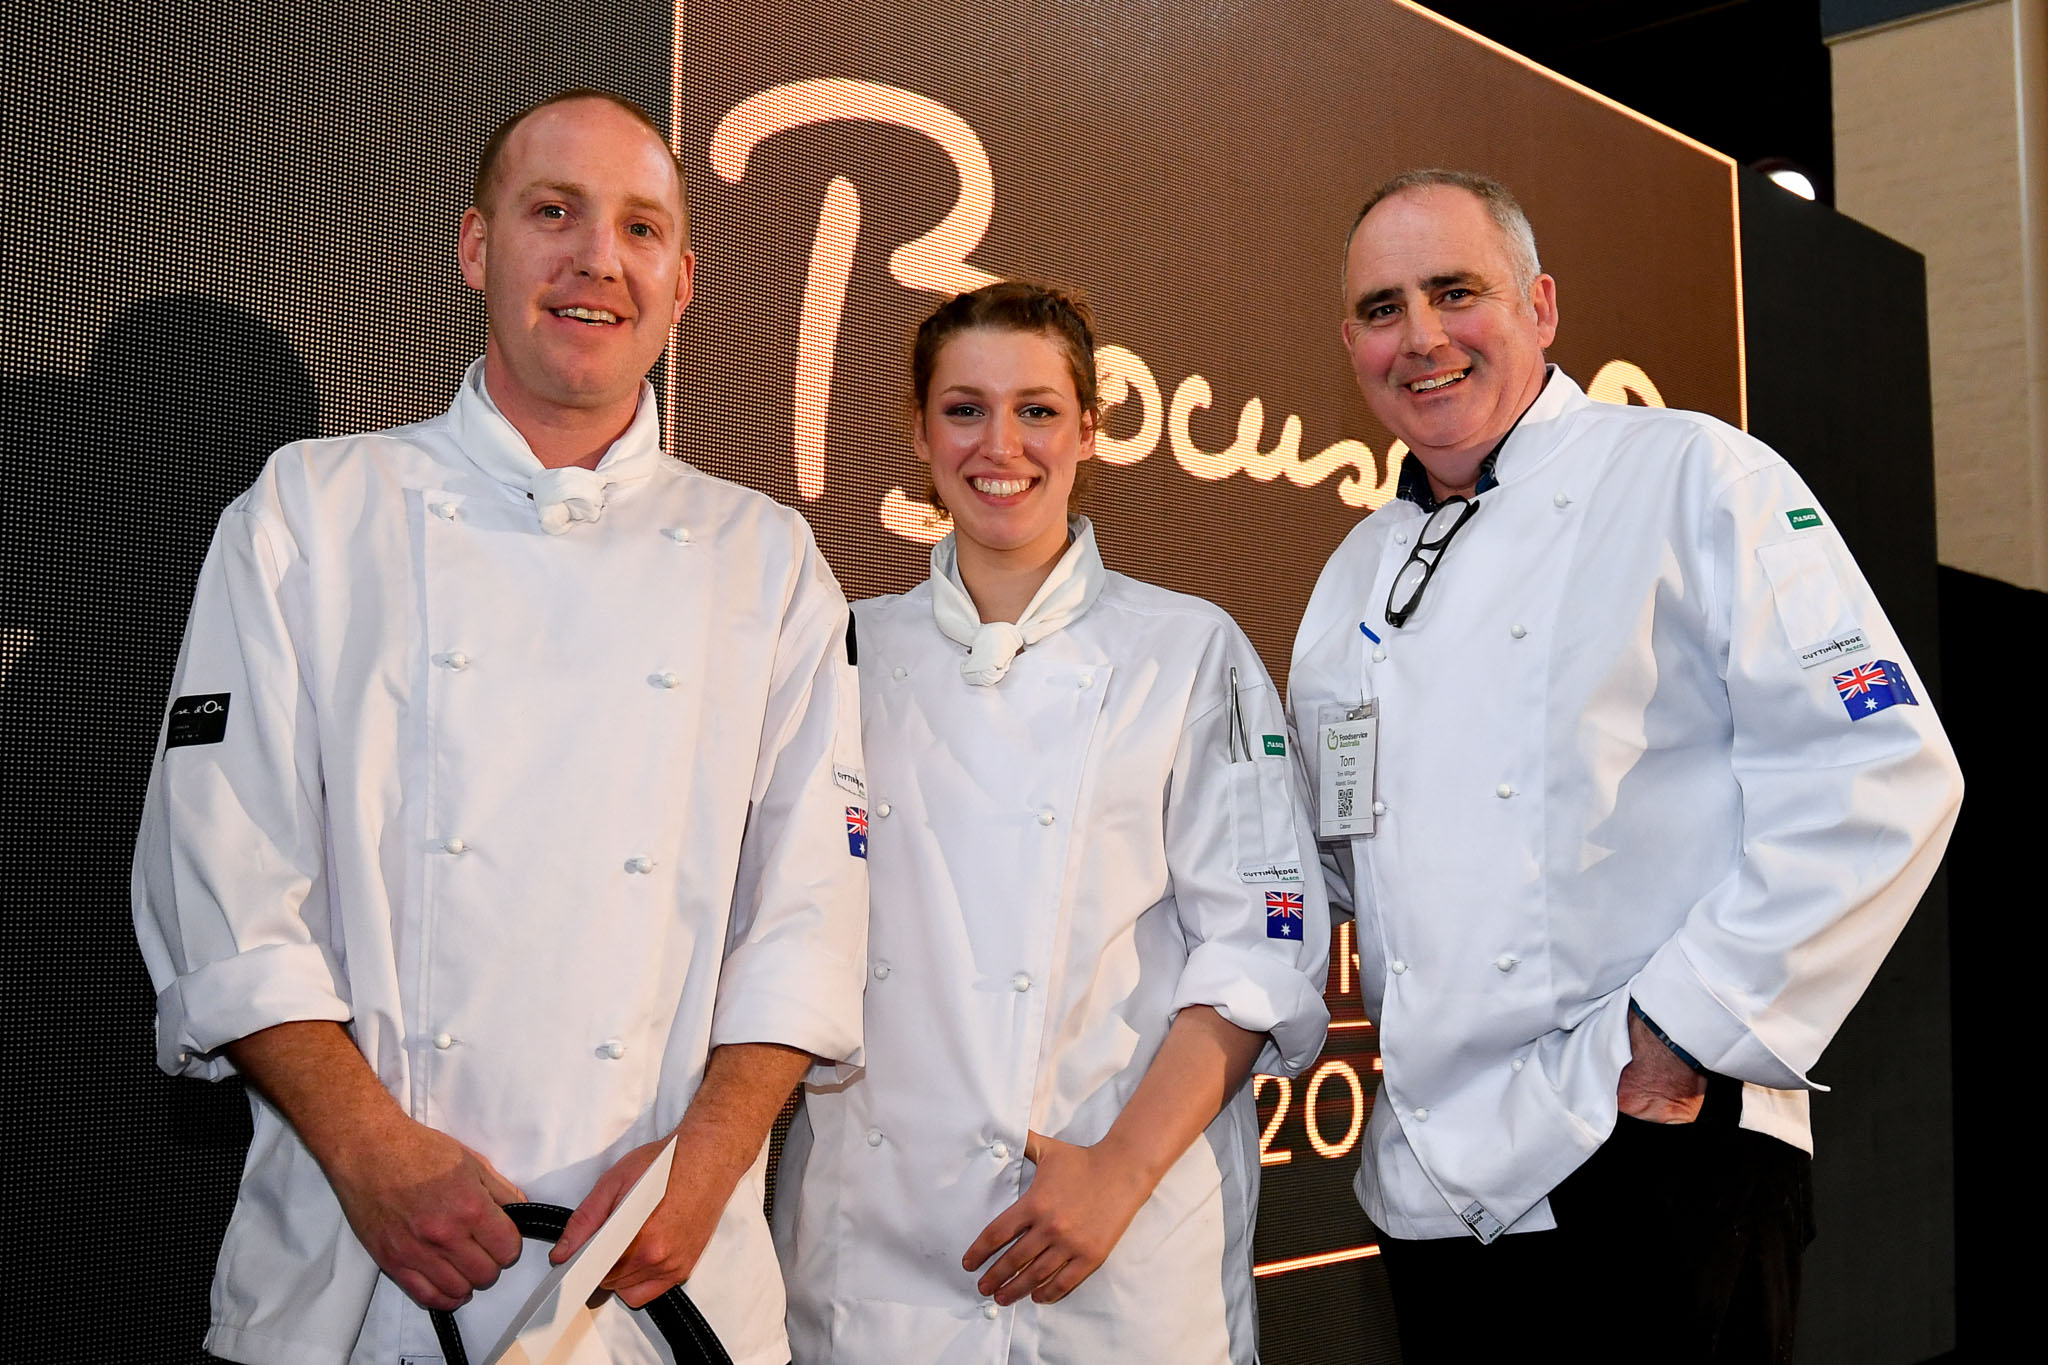 Melbourne, 30 May 2017 - Michael Cole and Laura Skvor of the Georgie Bass Café & Cookery in Flinders pose for a photograph with Tom Milligan of the Bocuse d'Or Academy Australia after winning the Australian selection trials of the Bocuse d'Or culinary competition held during the Food Service Australia show at the Royal Exhibition Building in Melbourne, Australia. Photo Sydney Low